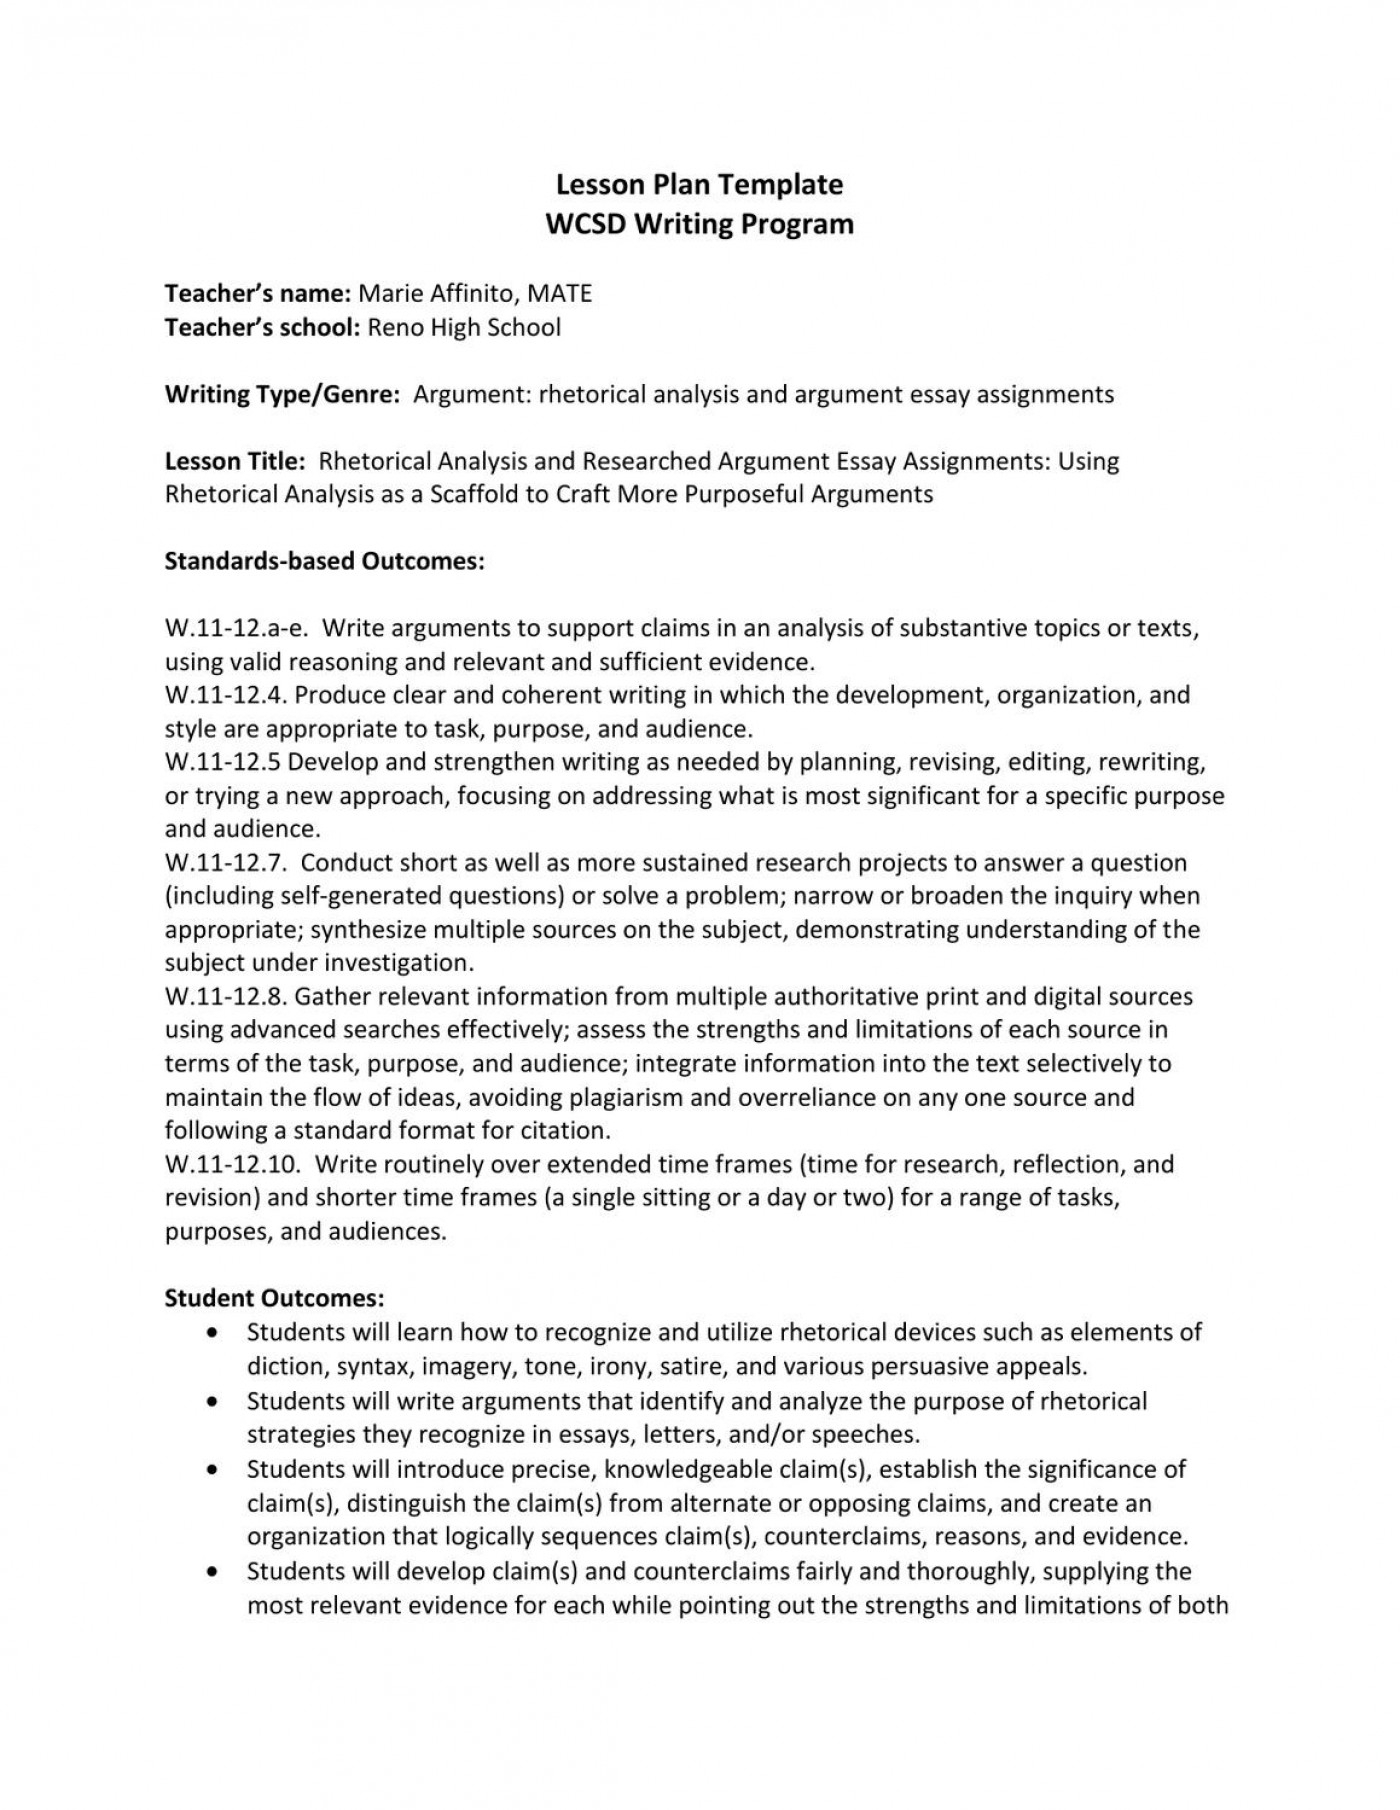 002 Essay Example Page 1 Why Do Authors Use Rhetorical Devices In Frightening Essays Quizlet Brainly 1400